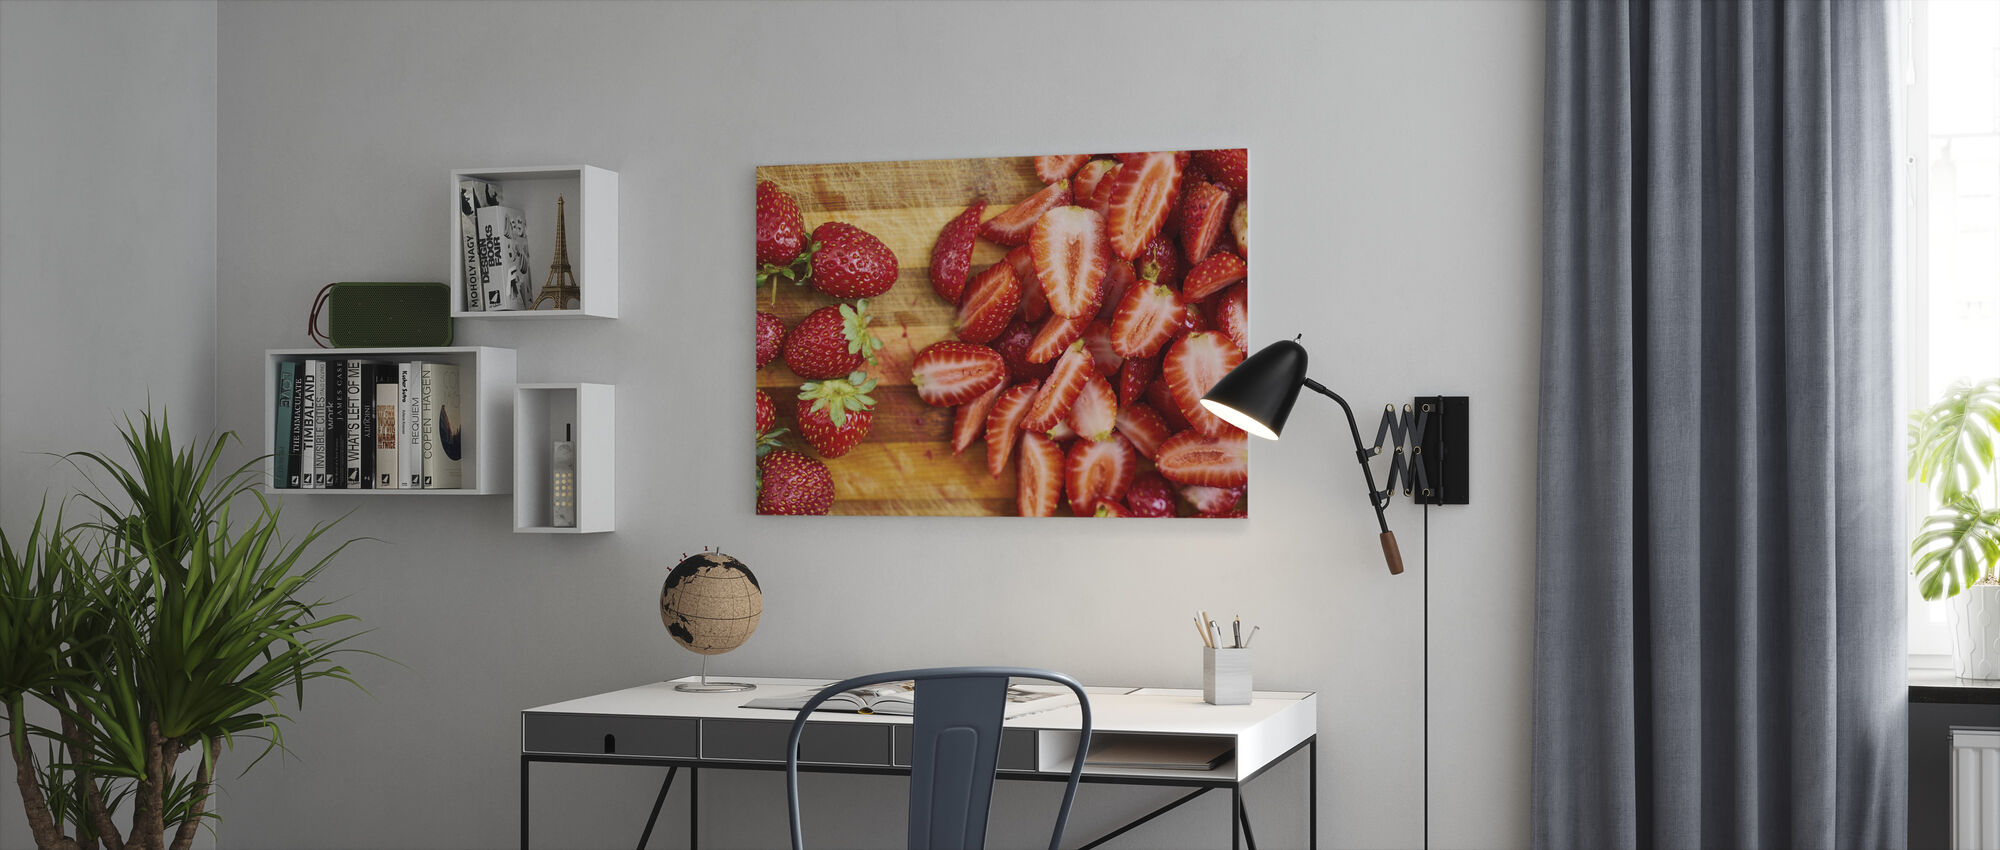 Strawberry Fruits - Canvas print - Office